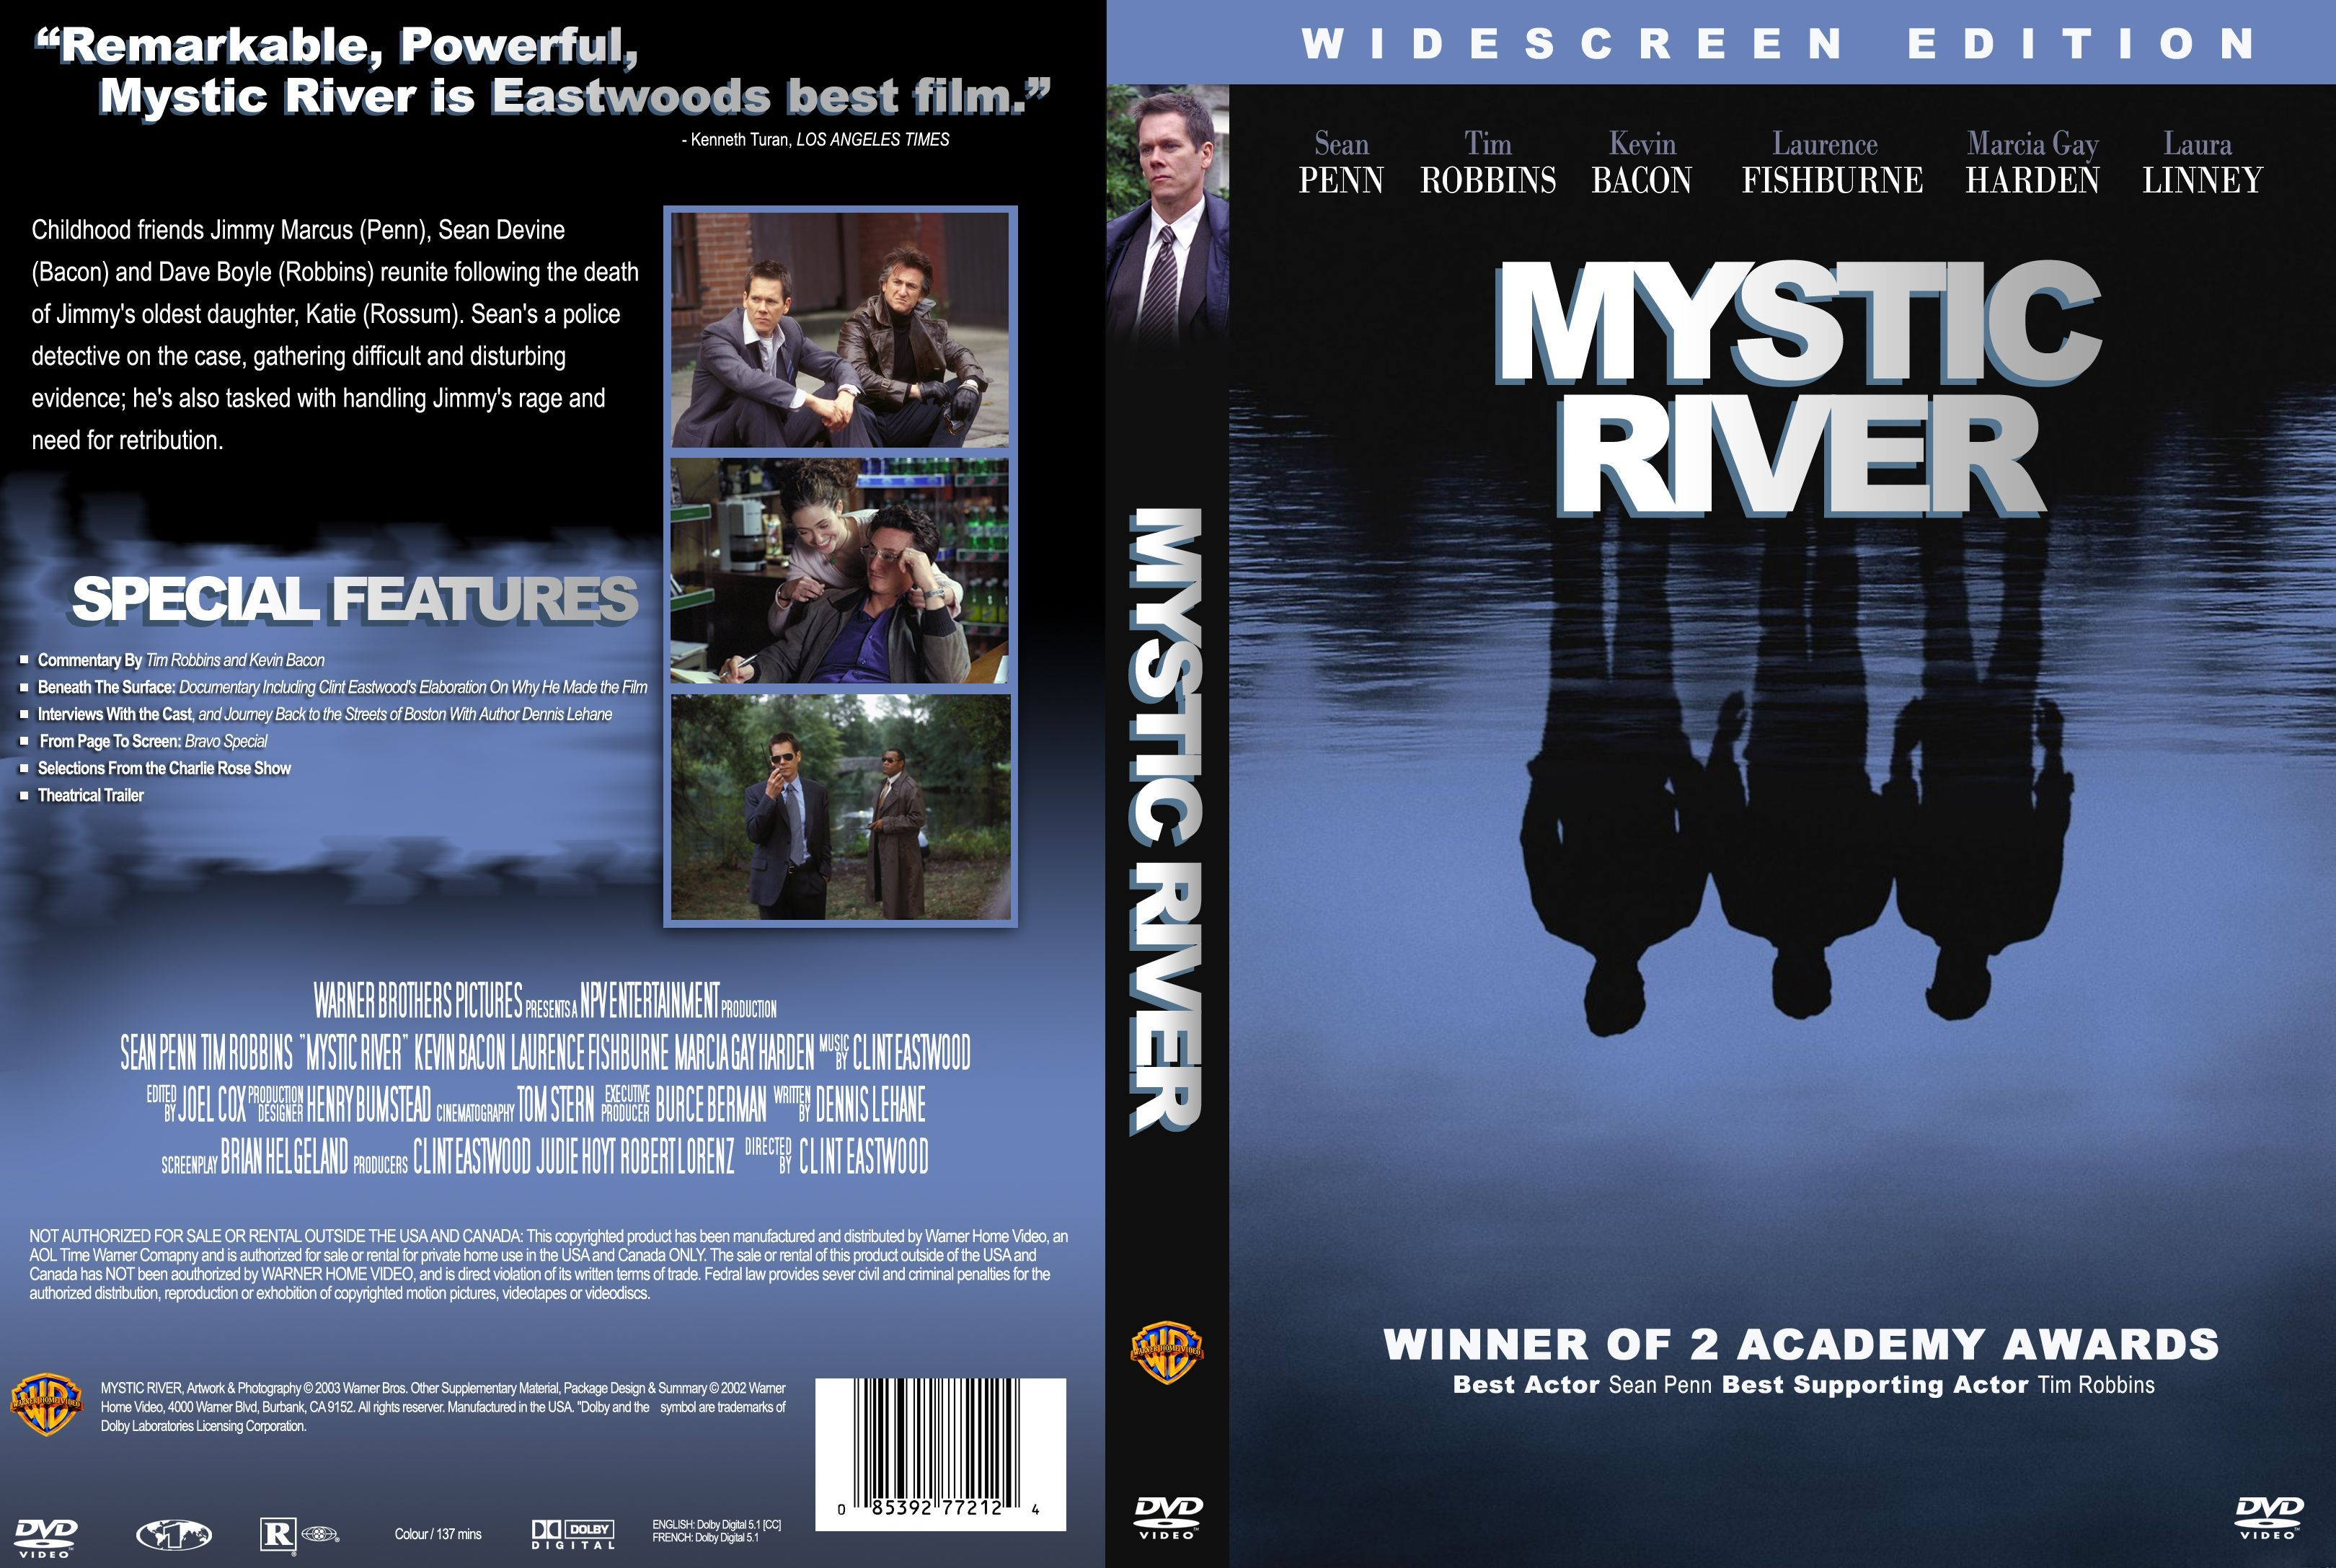 Mystic River | DVD covers and movie posters | Pinterest | Movie